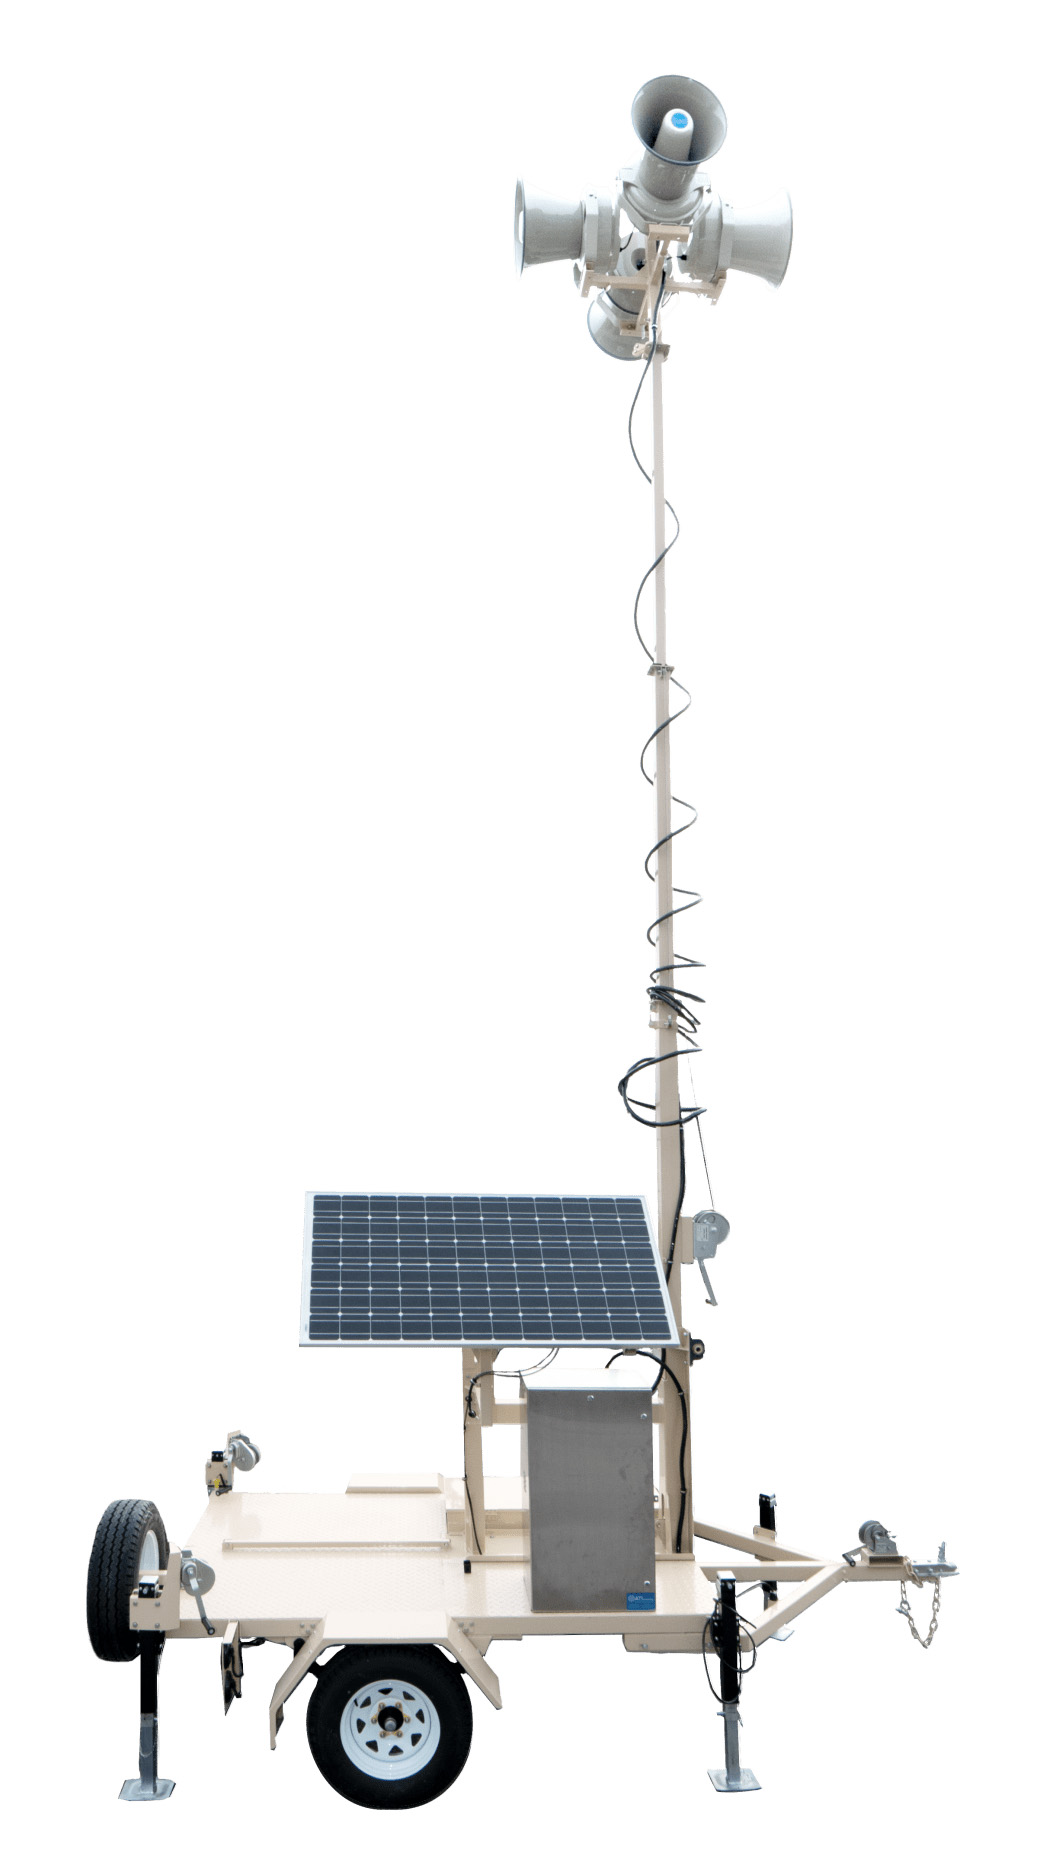 The Mobile High Powered Siren Station (MHPSS) from ATI Systems, is an ergonomic mobile siren trailer that allows Emergency Managers to deploy a reliable system in minutes.